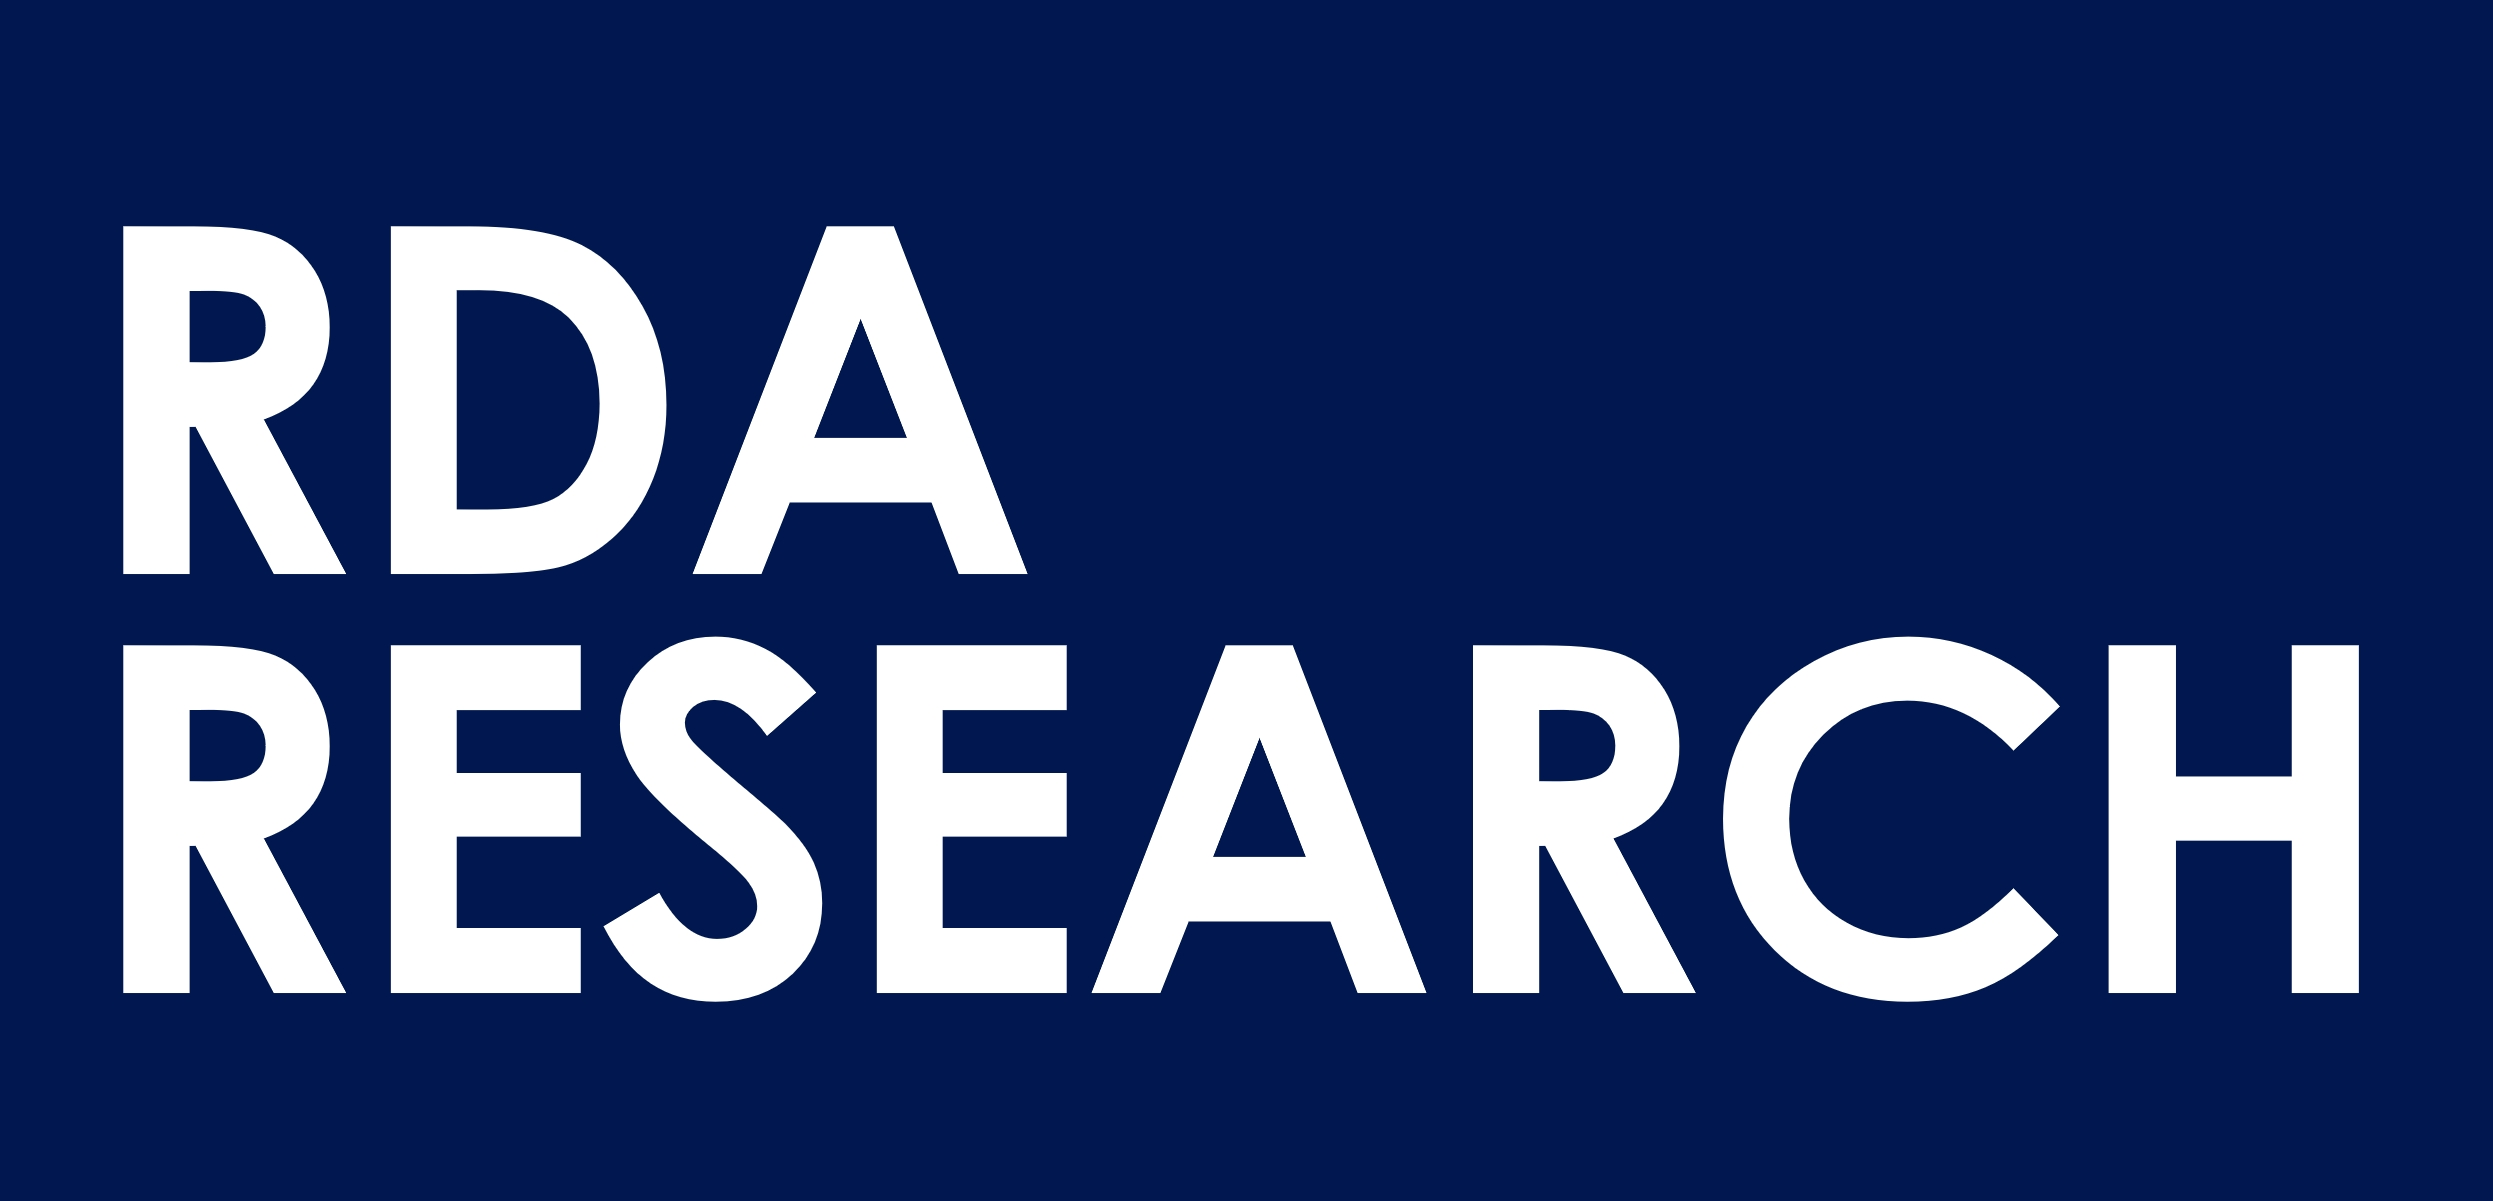 rdaresearch-logo-2